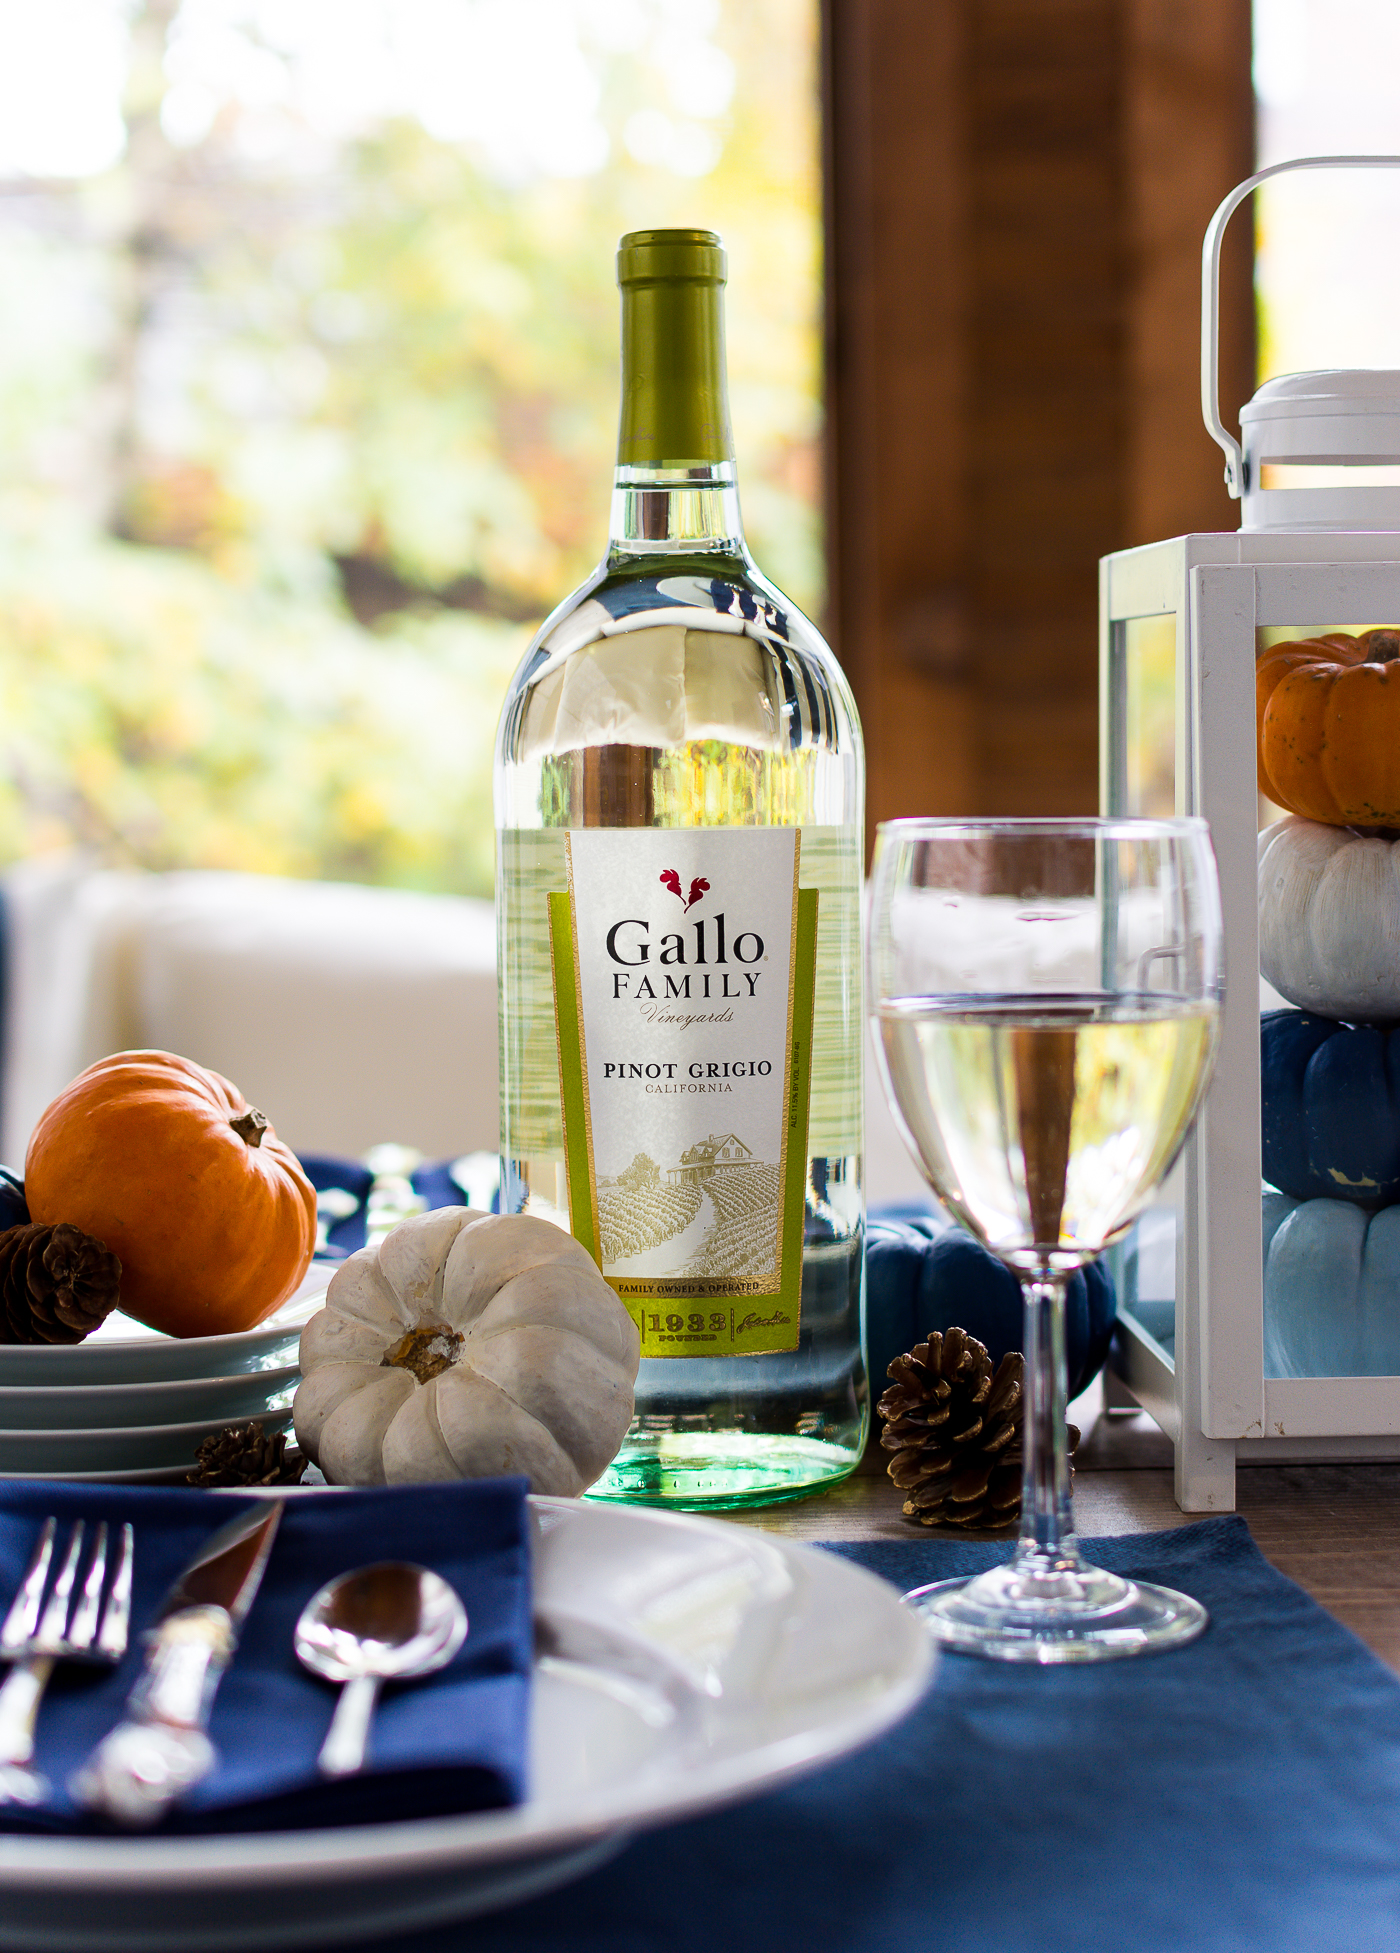 thanksgiving-table-setting-idea-navy-blue-white-orange-with-gallo-wine-pinot-grigio-itallstartedwithpait-com-7